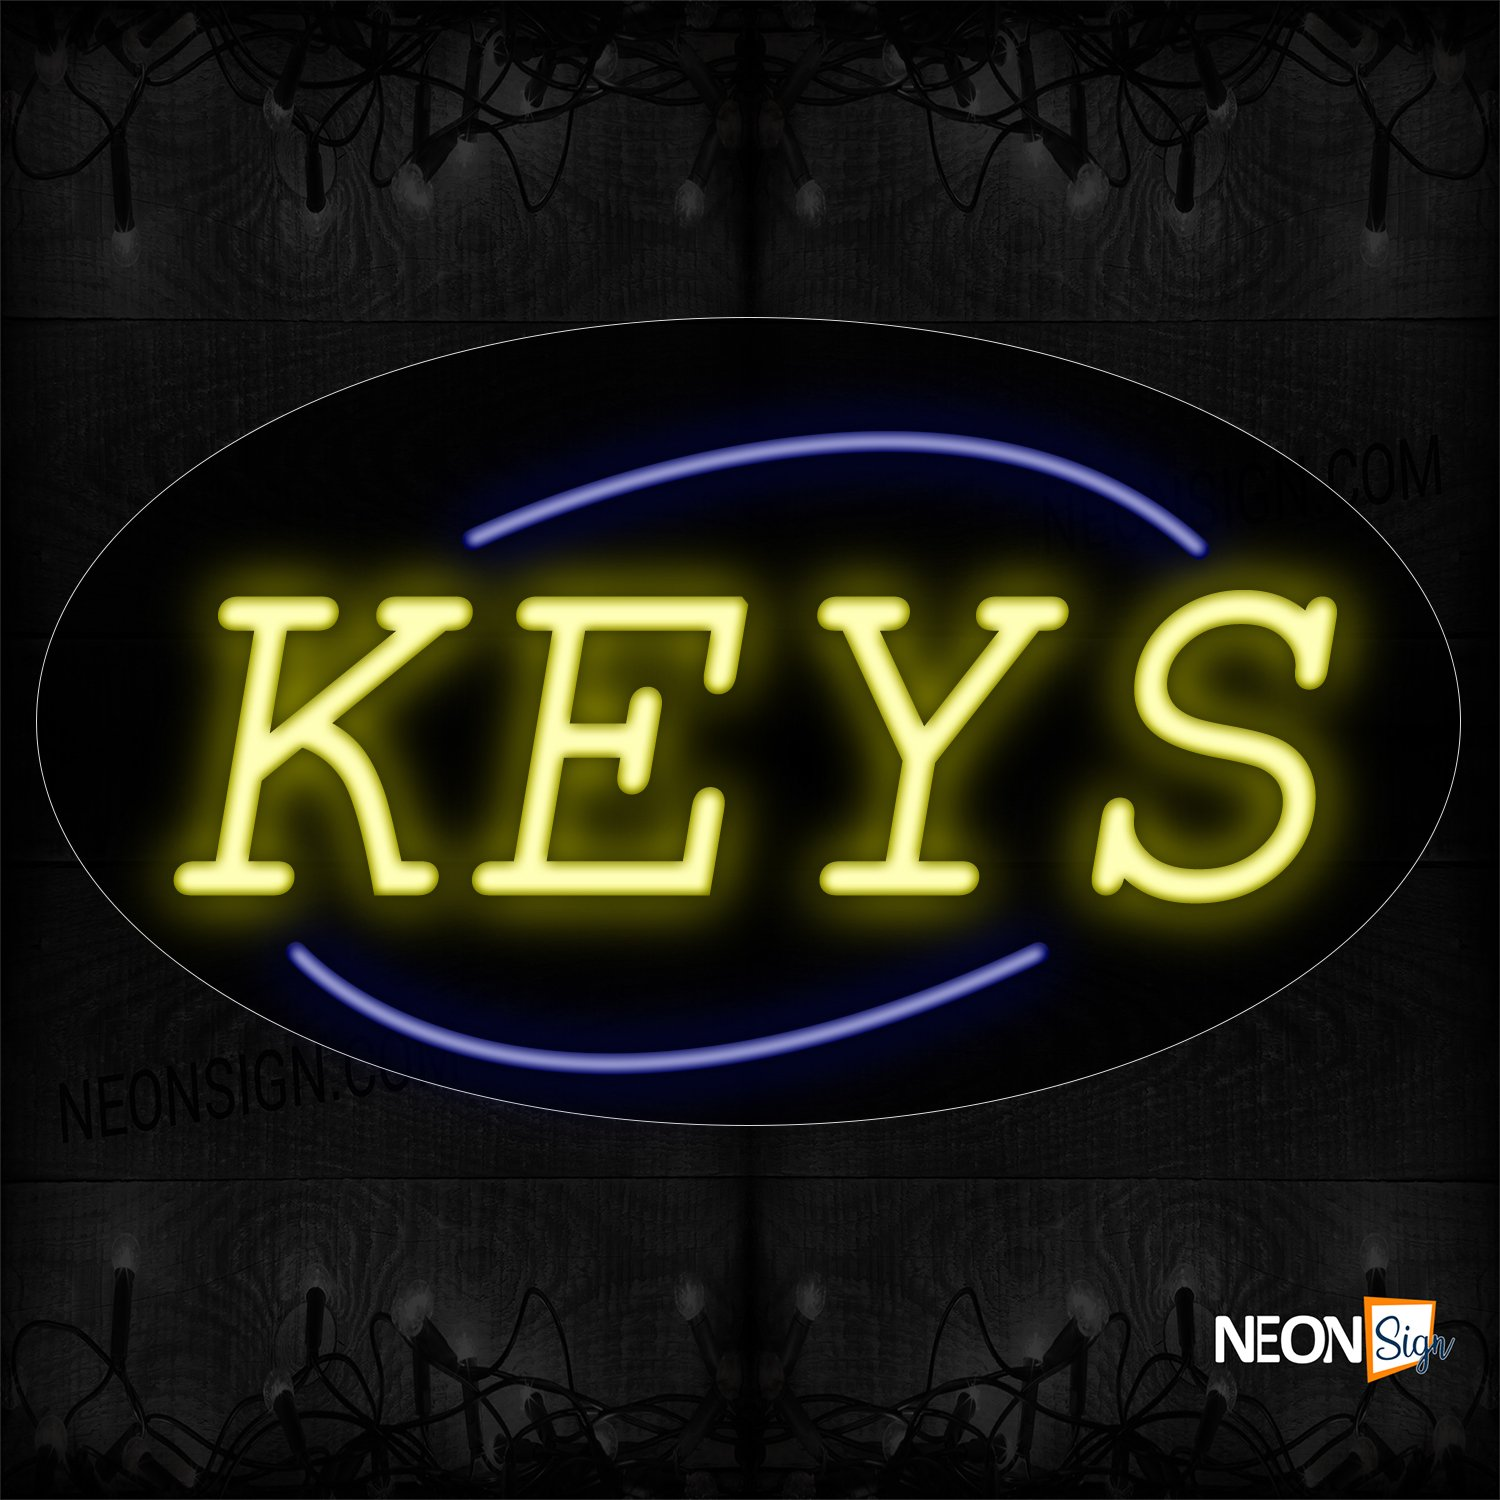 Image of 14234 Keys In Yellow With Blue Arc Border Neon Sign_17x30 Contoured Black Backing